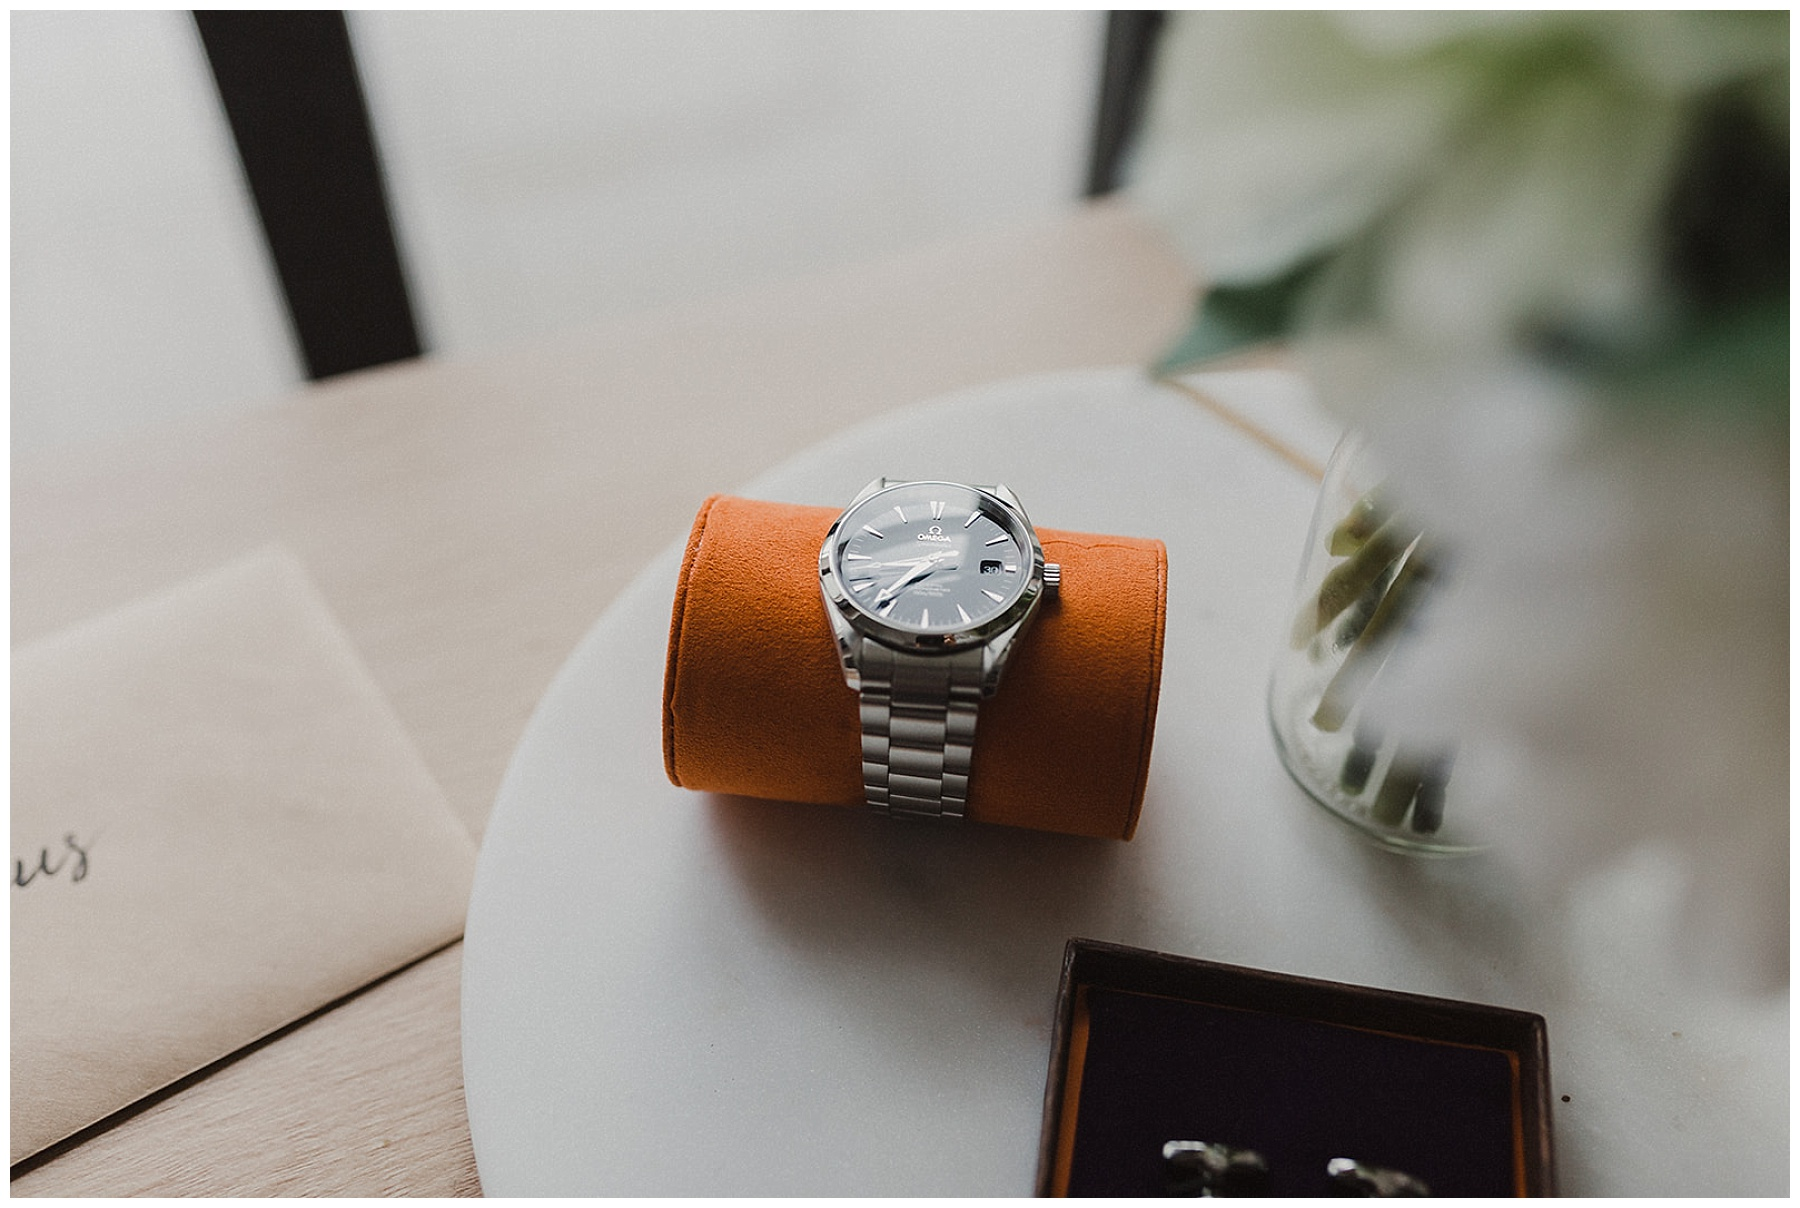 Sydney Groom's watch and details